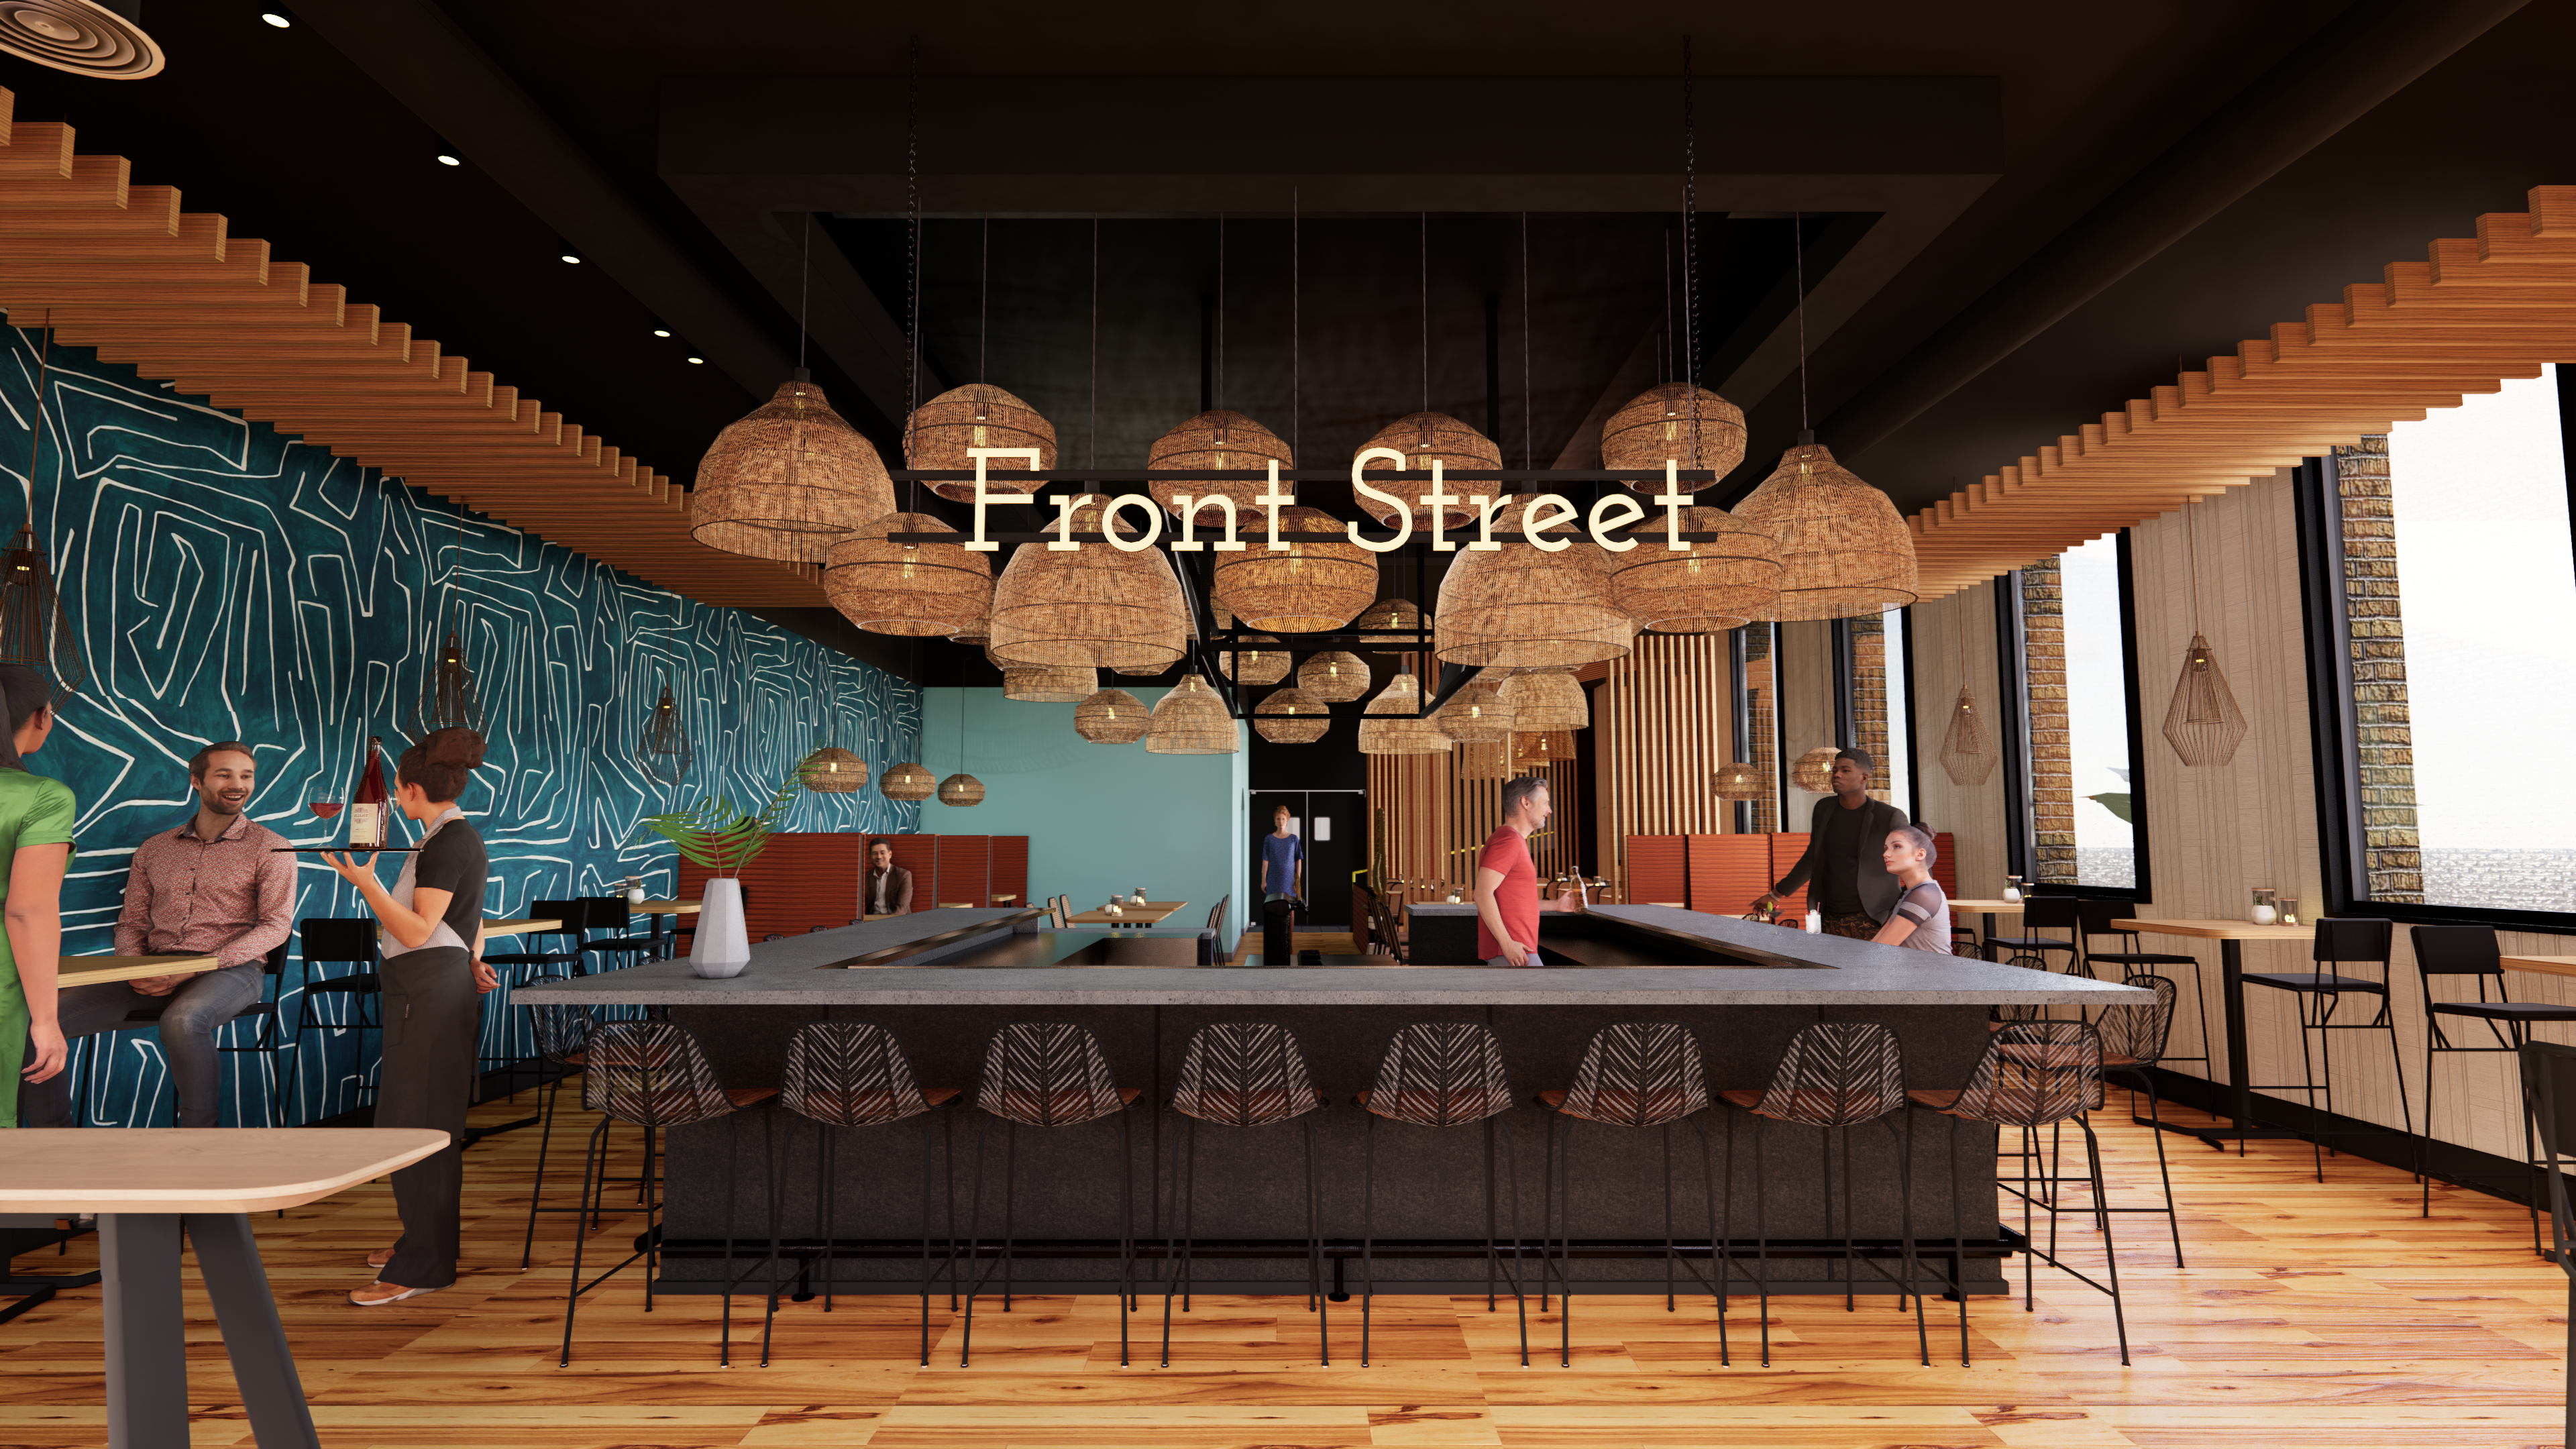 8 Front Street title